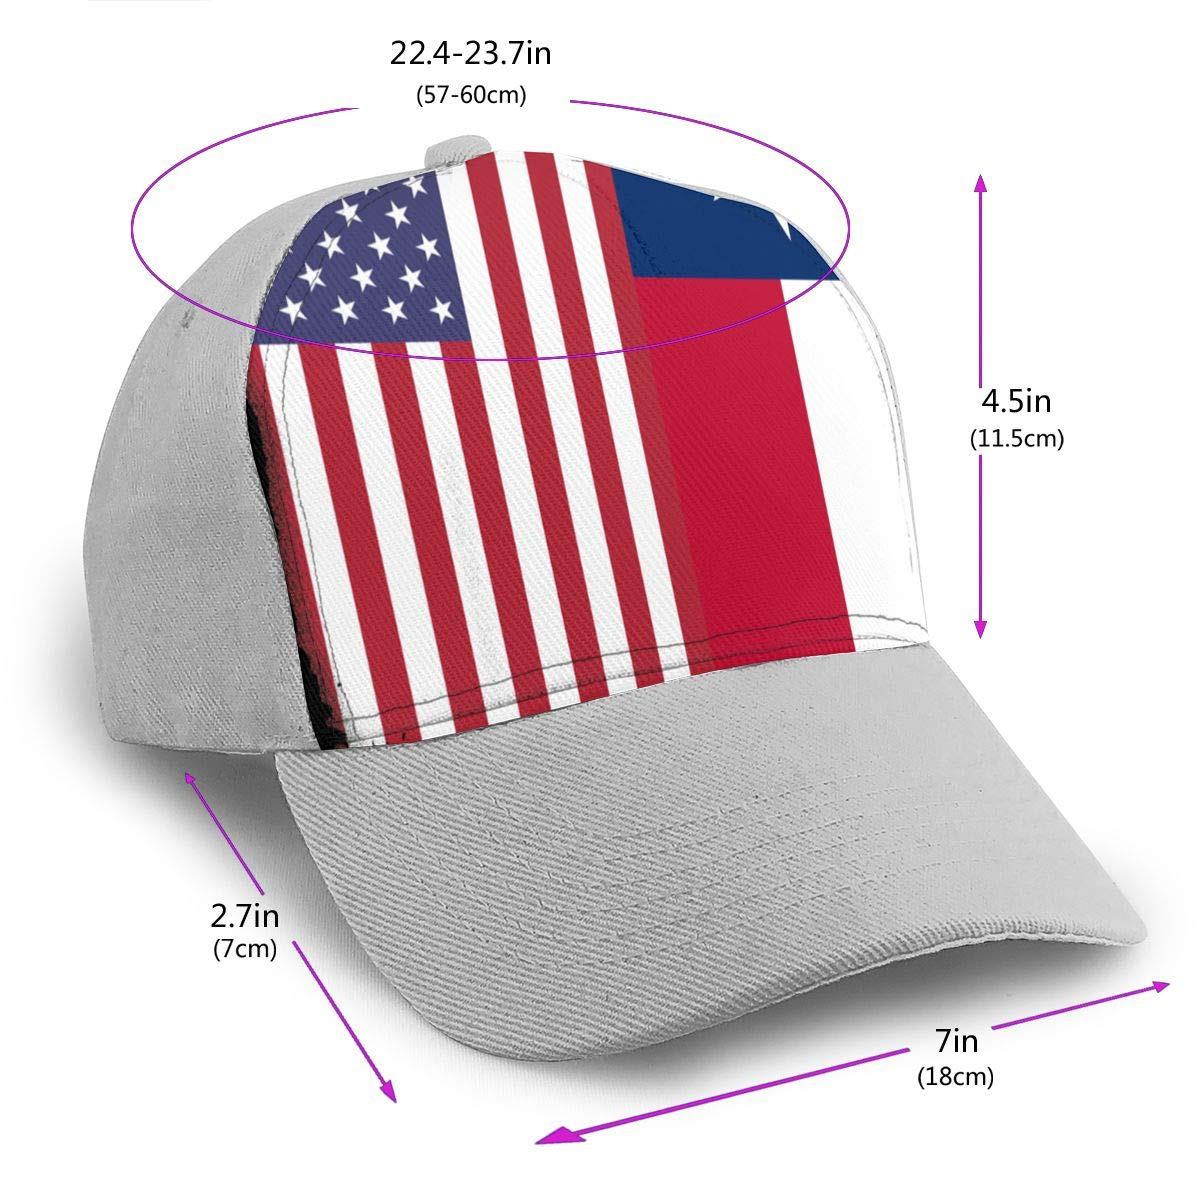 Y94OIW@MAO Texas Flag American Flag Peaked Cap for Unisex Cotton Sports Cap